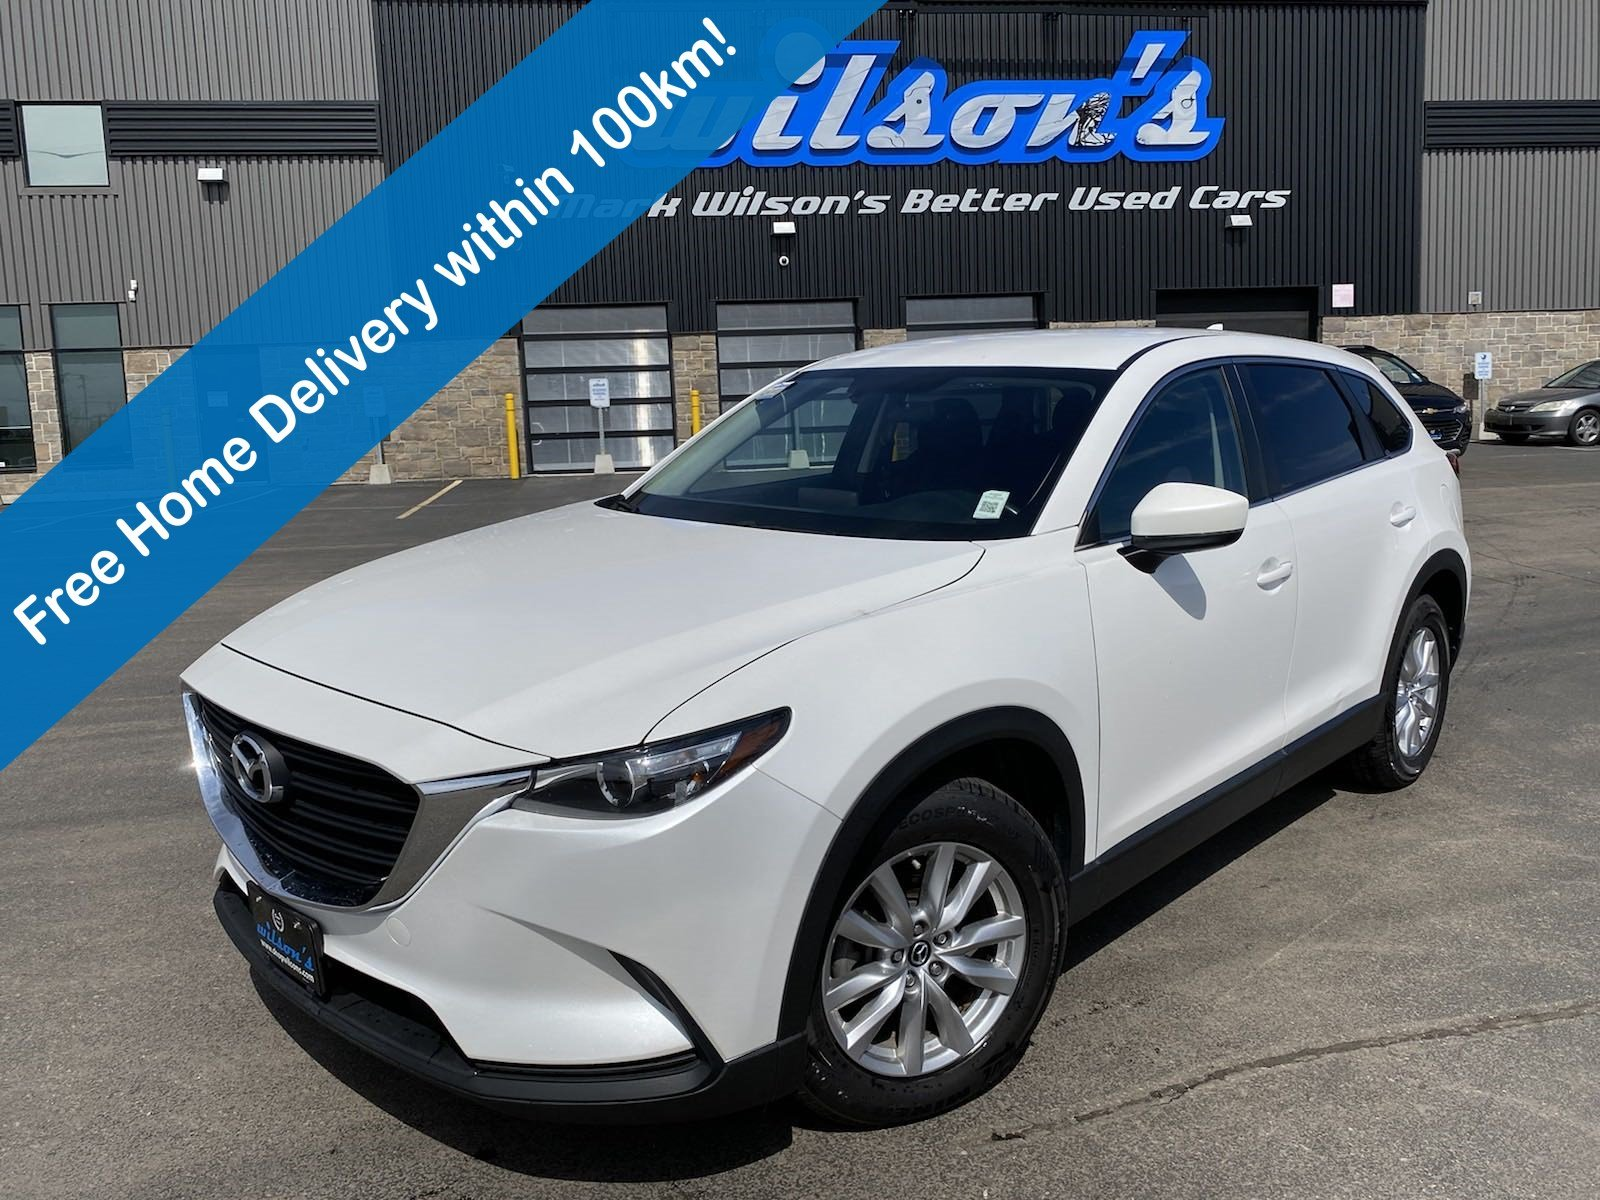 Certified Pre-Owned 2016 Mazda CX-9 GS AWD, Reverse Camera, Heated Seats, New Tires! Intelligent Key, LED Headlights, Alloys & More!